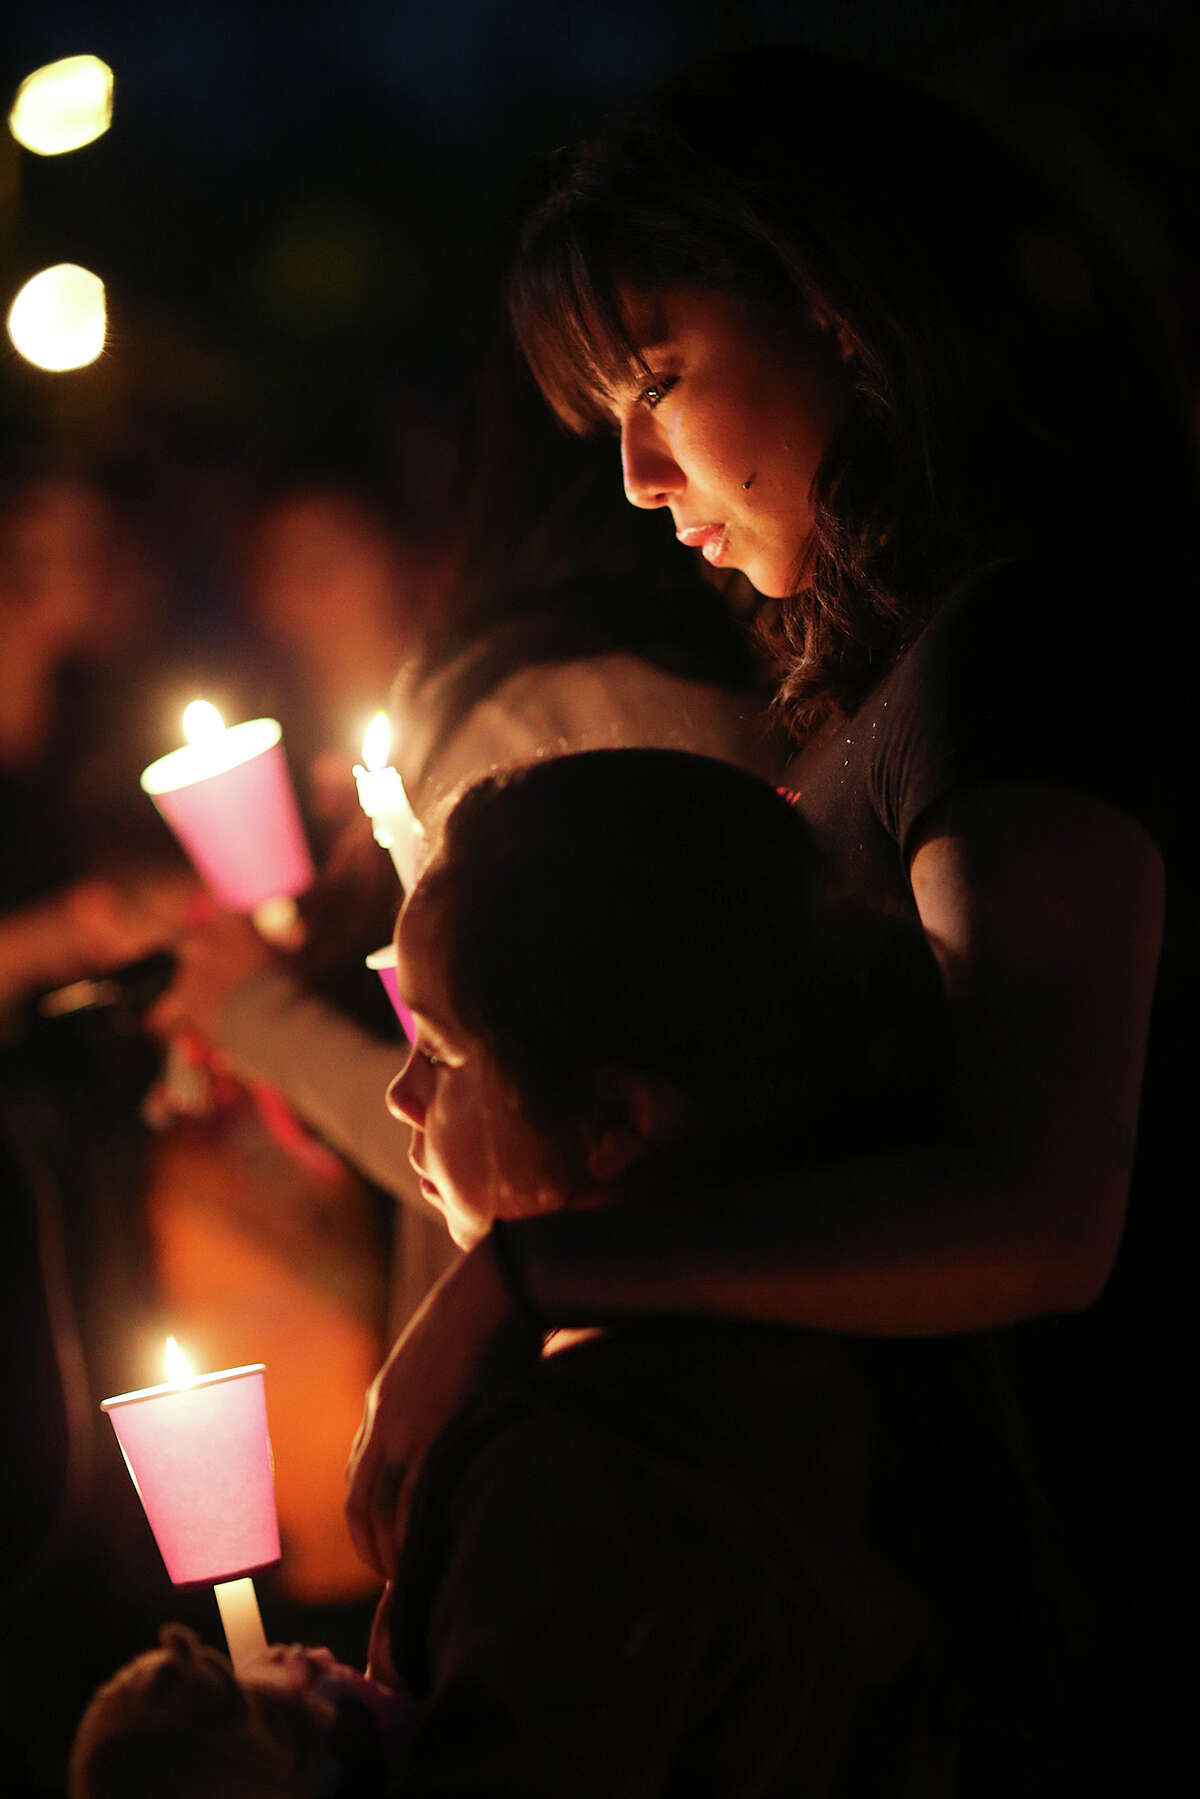 Angelina Vasquez, 8, is hugged by her aunt, Lorrina Robinson, 24, during a vigil for Vazquez' mother, Darlene Jessica Vasquez, 34, and Jenaro Covarrubias, 33, at 2302 Delgado, Monday, Dec. 8, 2014. The vigil was held at 2302 Delgado Street where the pair was murdered Sunday. The suspected shooter, Christopher Bernard Doss, 41, was killed by a member of the Lone Star Fugitive Task at a hotel on the 500 block of Roosevelt Avenue earlier in the day. During the incident, the suspect shot at the young girl but the bullet grazed her hand.